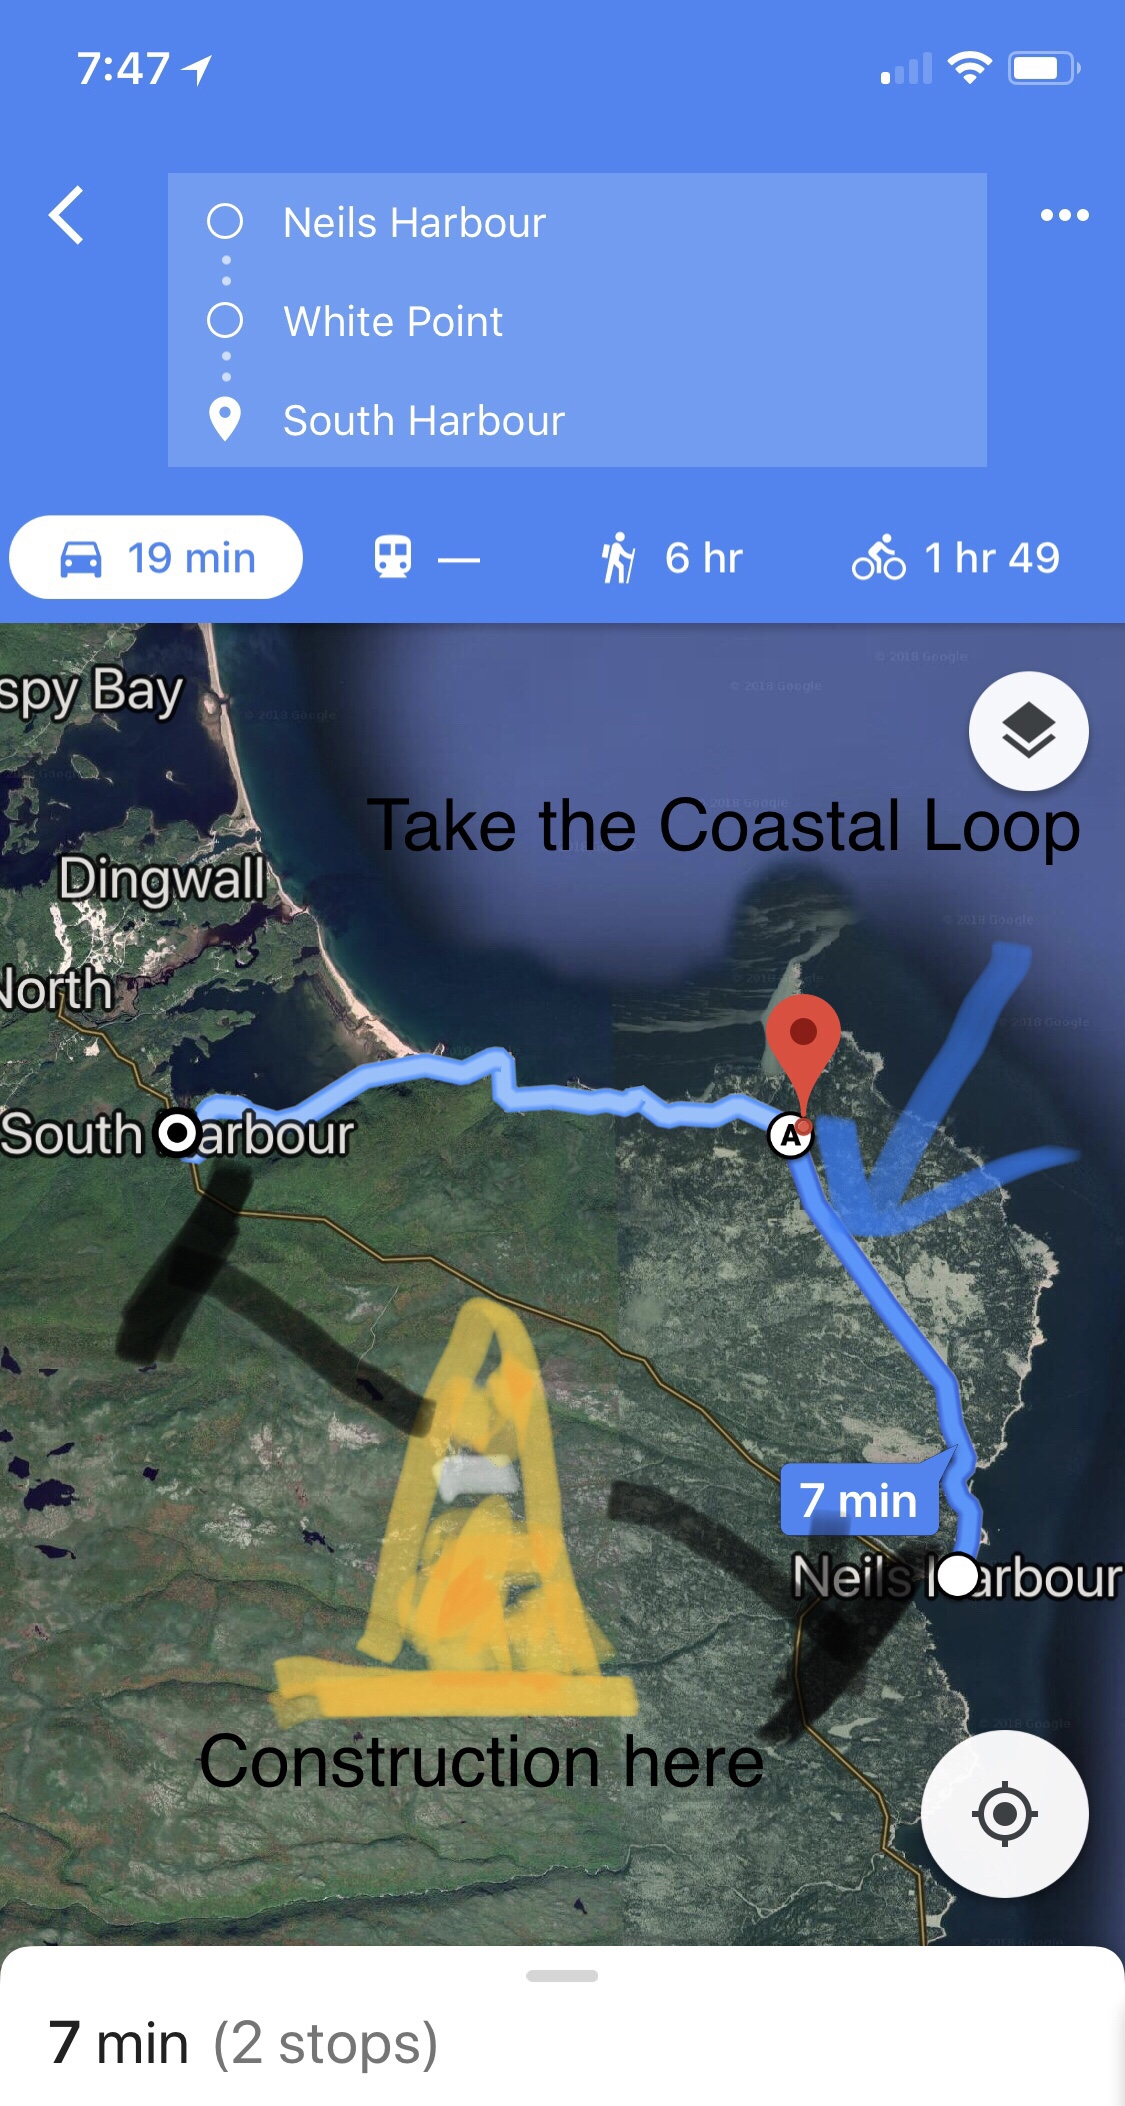 Live Cabot Trail Road Construction Map | Riding the Cabot ... on 100-series highways, gulf of saint lawrence map, wagon train trails map, osa peninsula map, elbe river map, cape breton map, the wave az map, ceilidh trail, evangeline trail, old quebec, lighthouse route, ho chi minh trail map, cape breton island, skyline trail map, evangeline trail map, glooscap trail, hopewell rocks map, fleur-de-lis trail, bay of fundy map, eastern shore of virginia map, richmond county map, nova scotia route 245, nova scotia highway 103, bay of fundy, fortress of louisbourg map, denali highway map, nova scotia highway 101, sunrise trail, cape breton highlands national park, sunrise trail map, mediterranean coast map, canada map, new brunswick map, marconi trail, nahanni national park reserve, marine drive, nova scotia map,